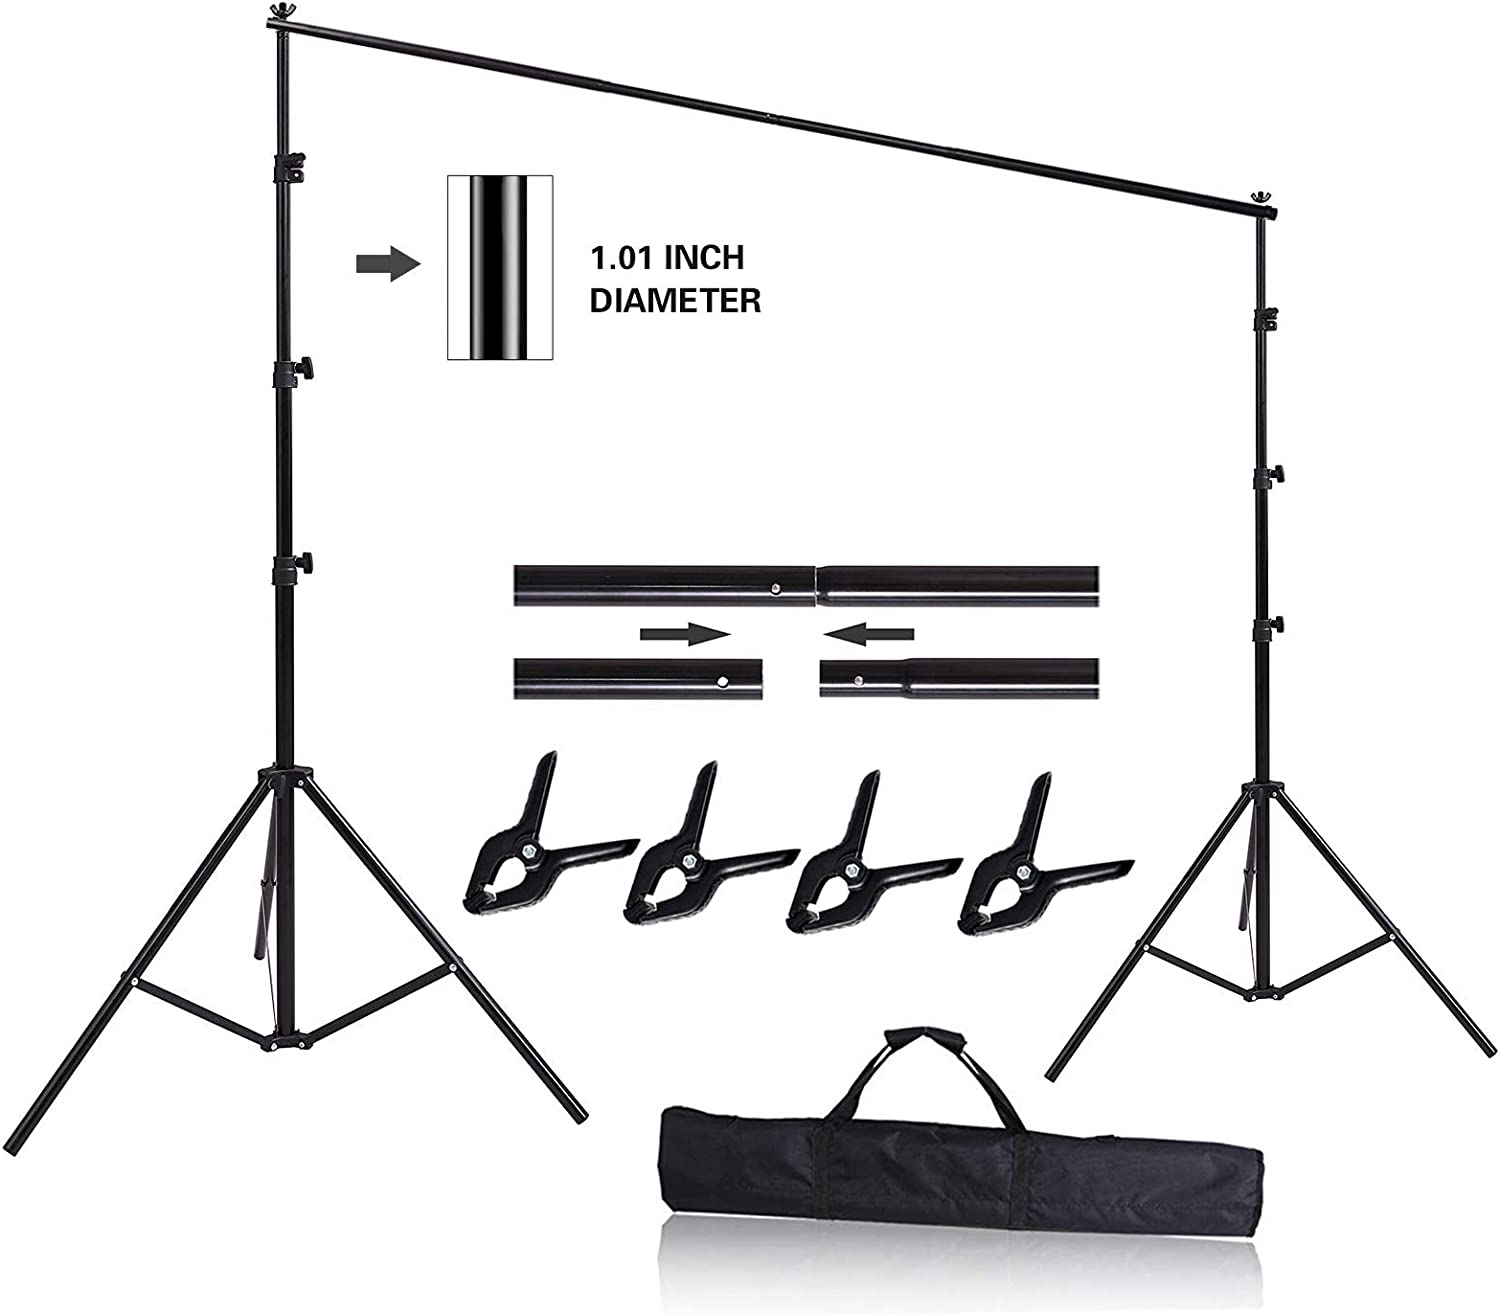 HYJ-INC 10ft x 8.5ft Adjustable Photography Backdrop Support System Photo Video Studio Muslin Background Stand Kit with Carry Bag